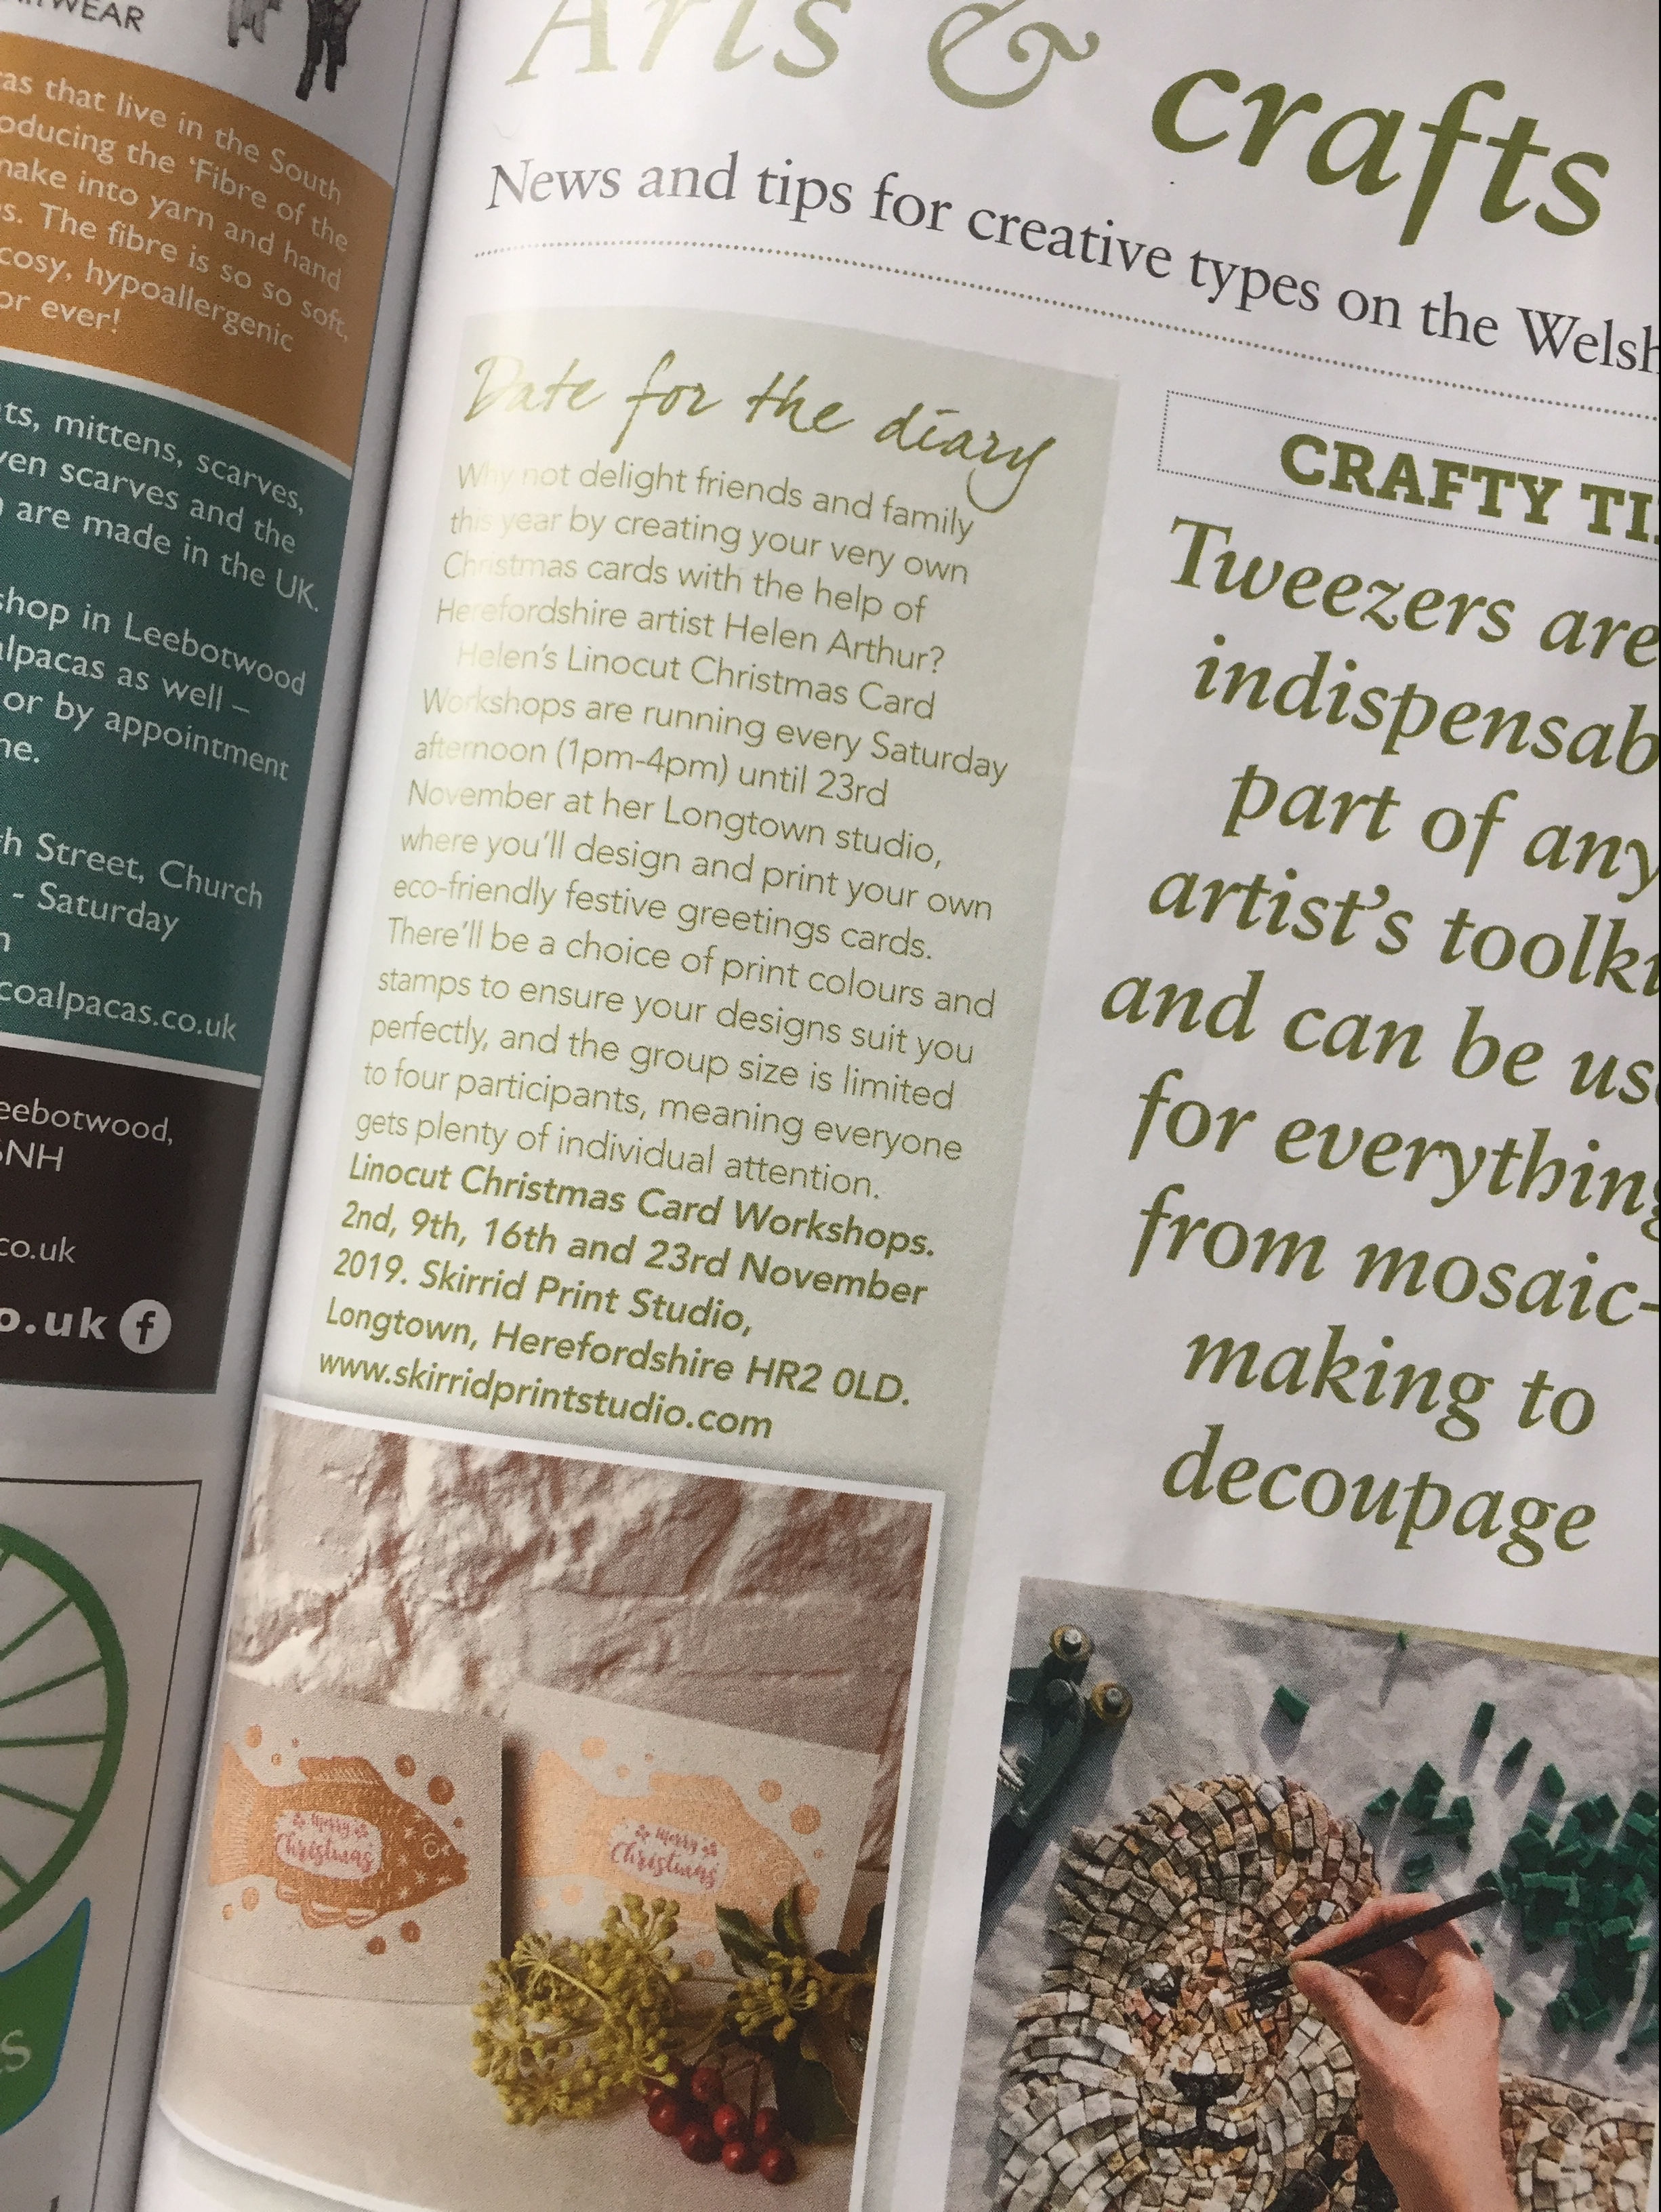 Close up of Arts and Crafts section of Welsh BorderLife magazine